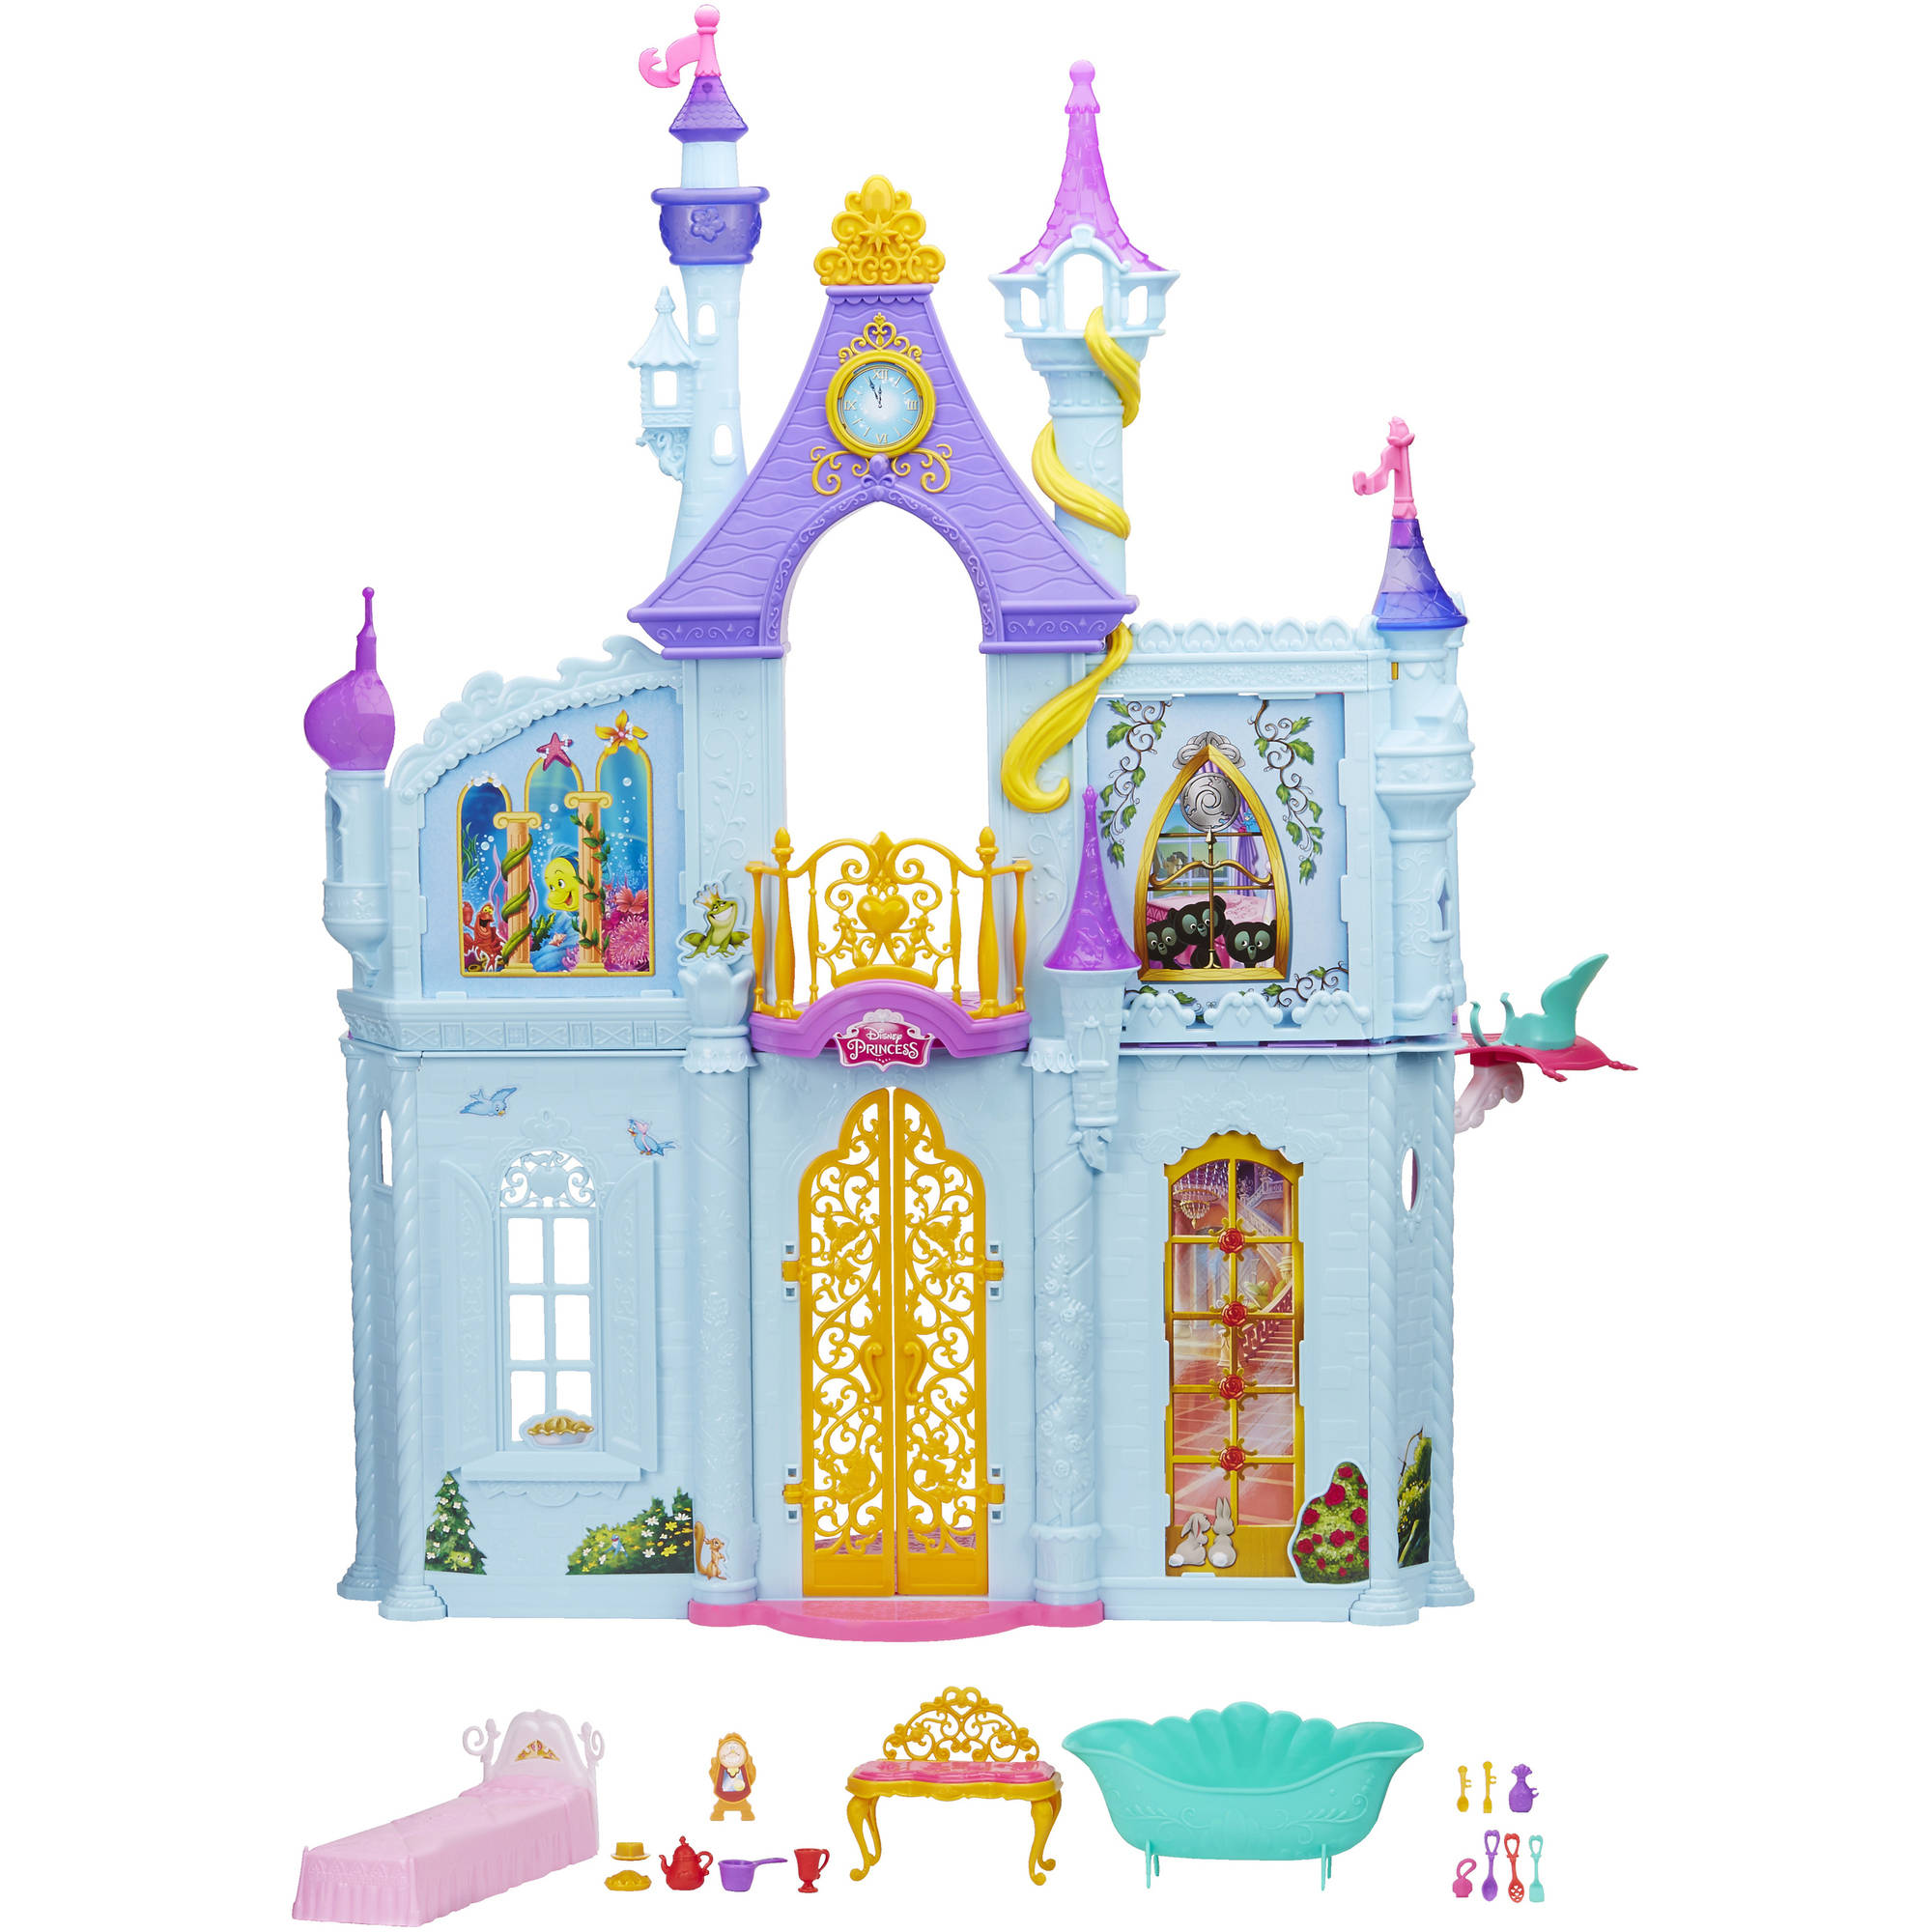 Disney Princess Royal Dreams Castle by Disney Princess